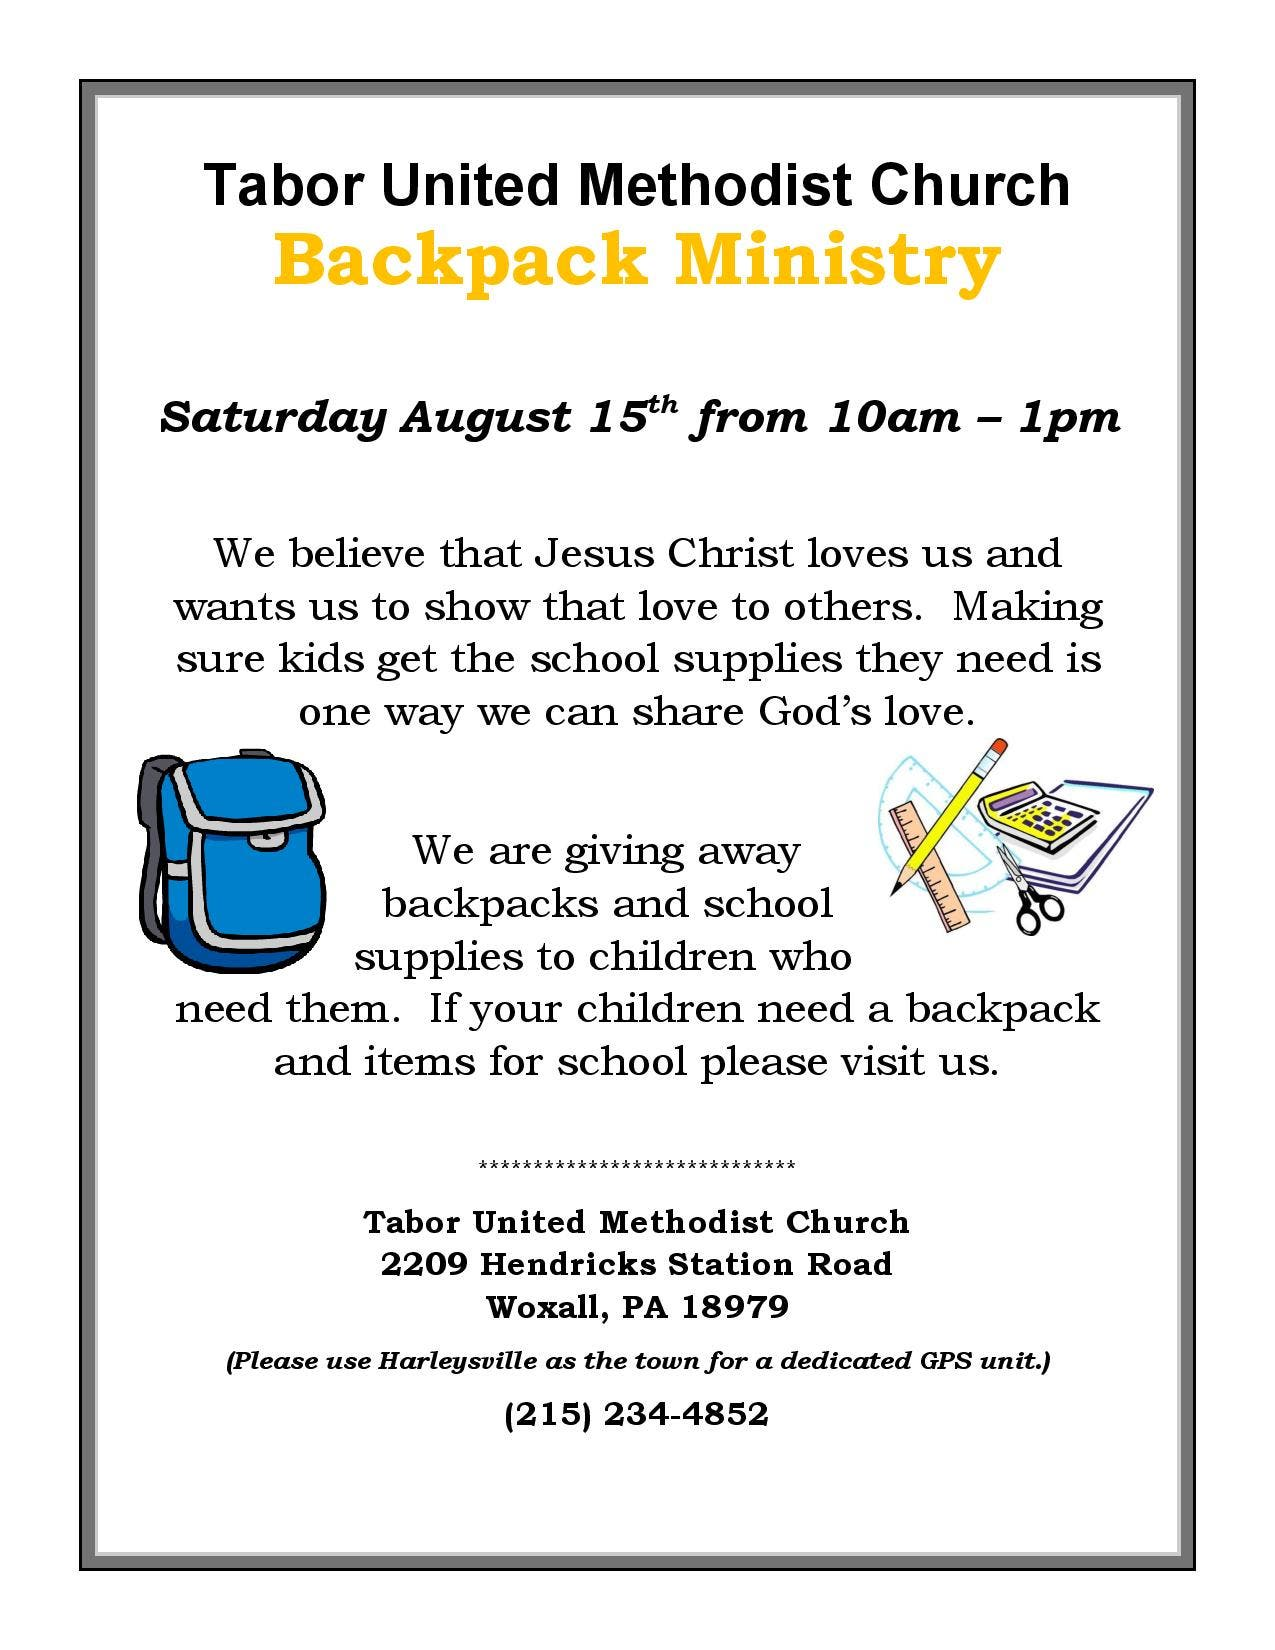 Tabor Church Backpack Ministry - Free Backpack & School